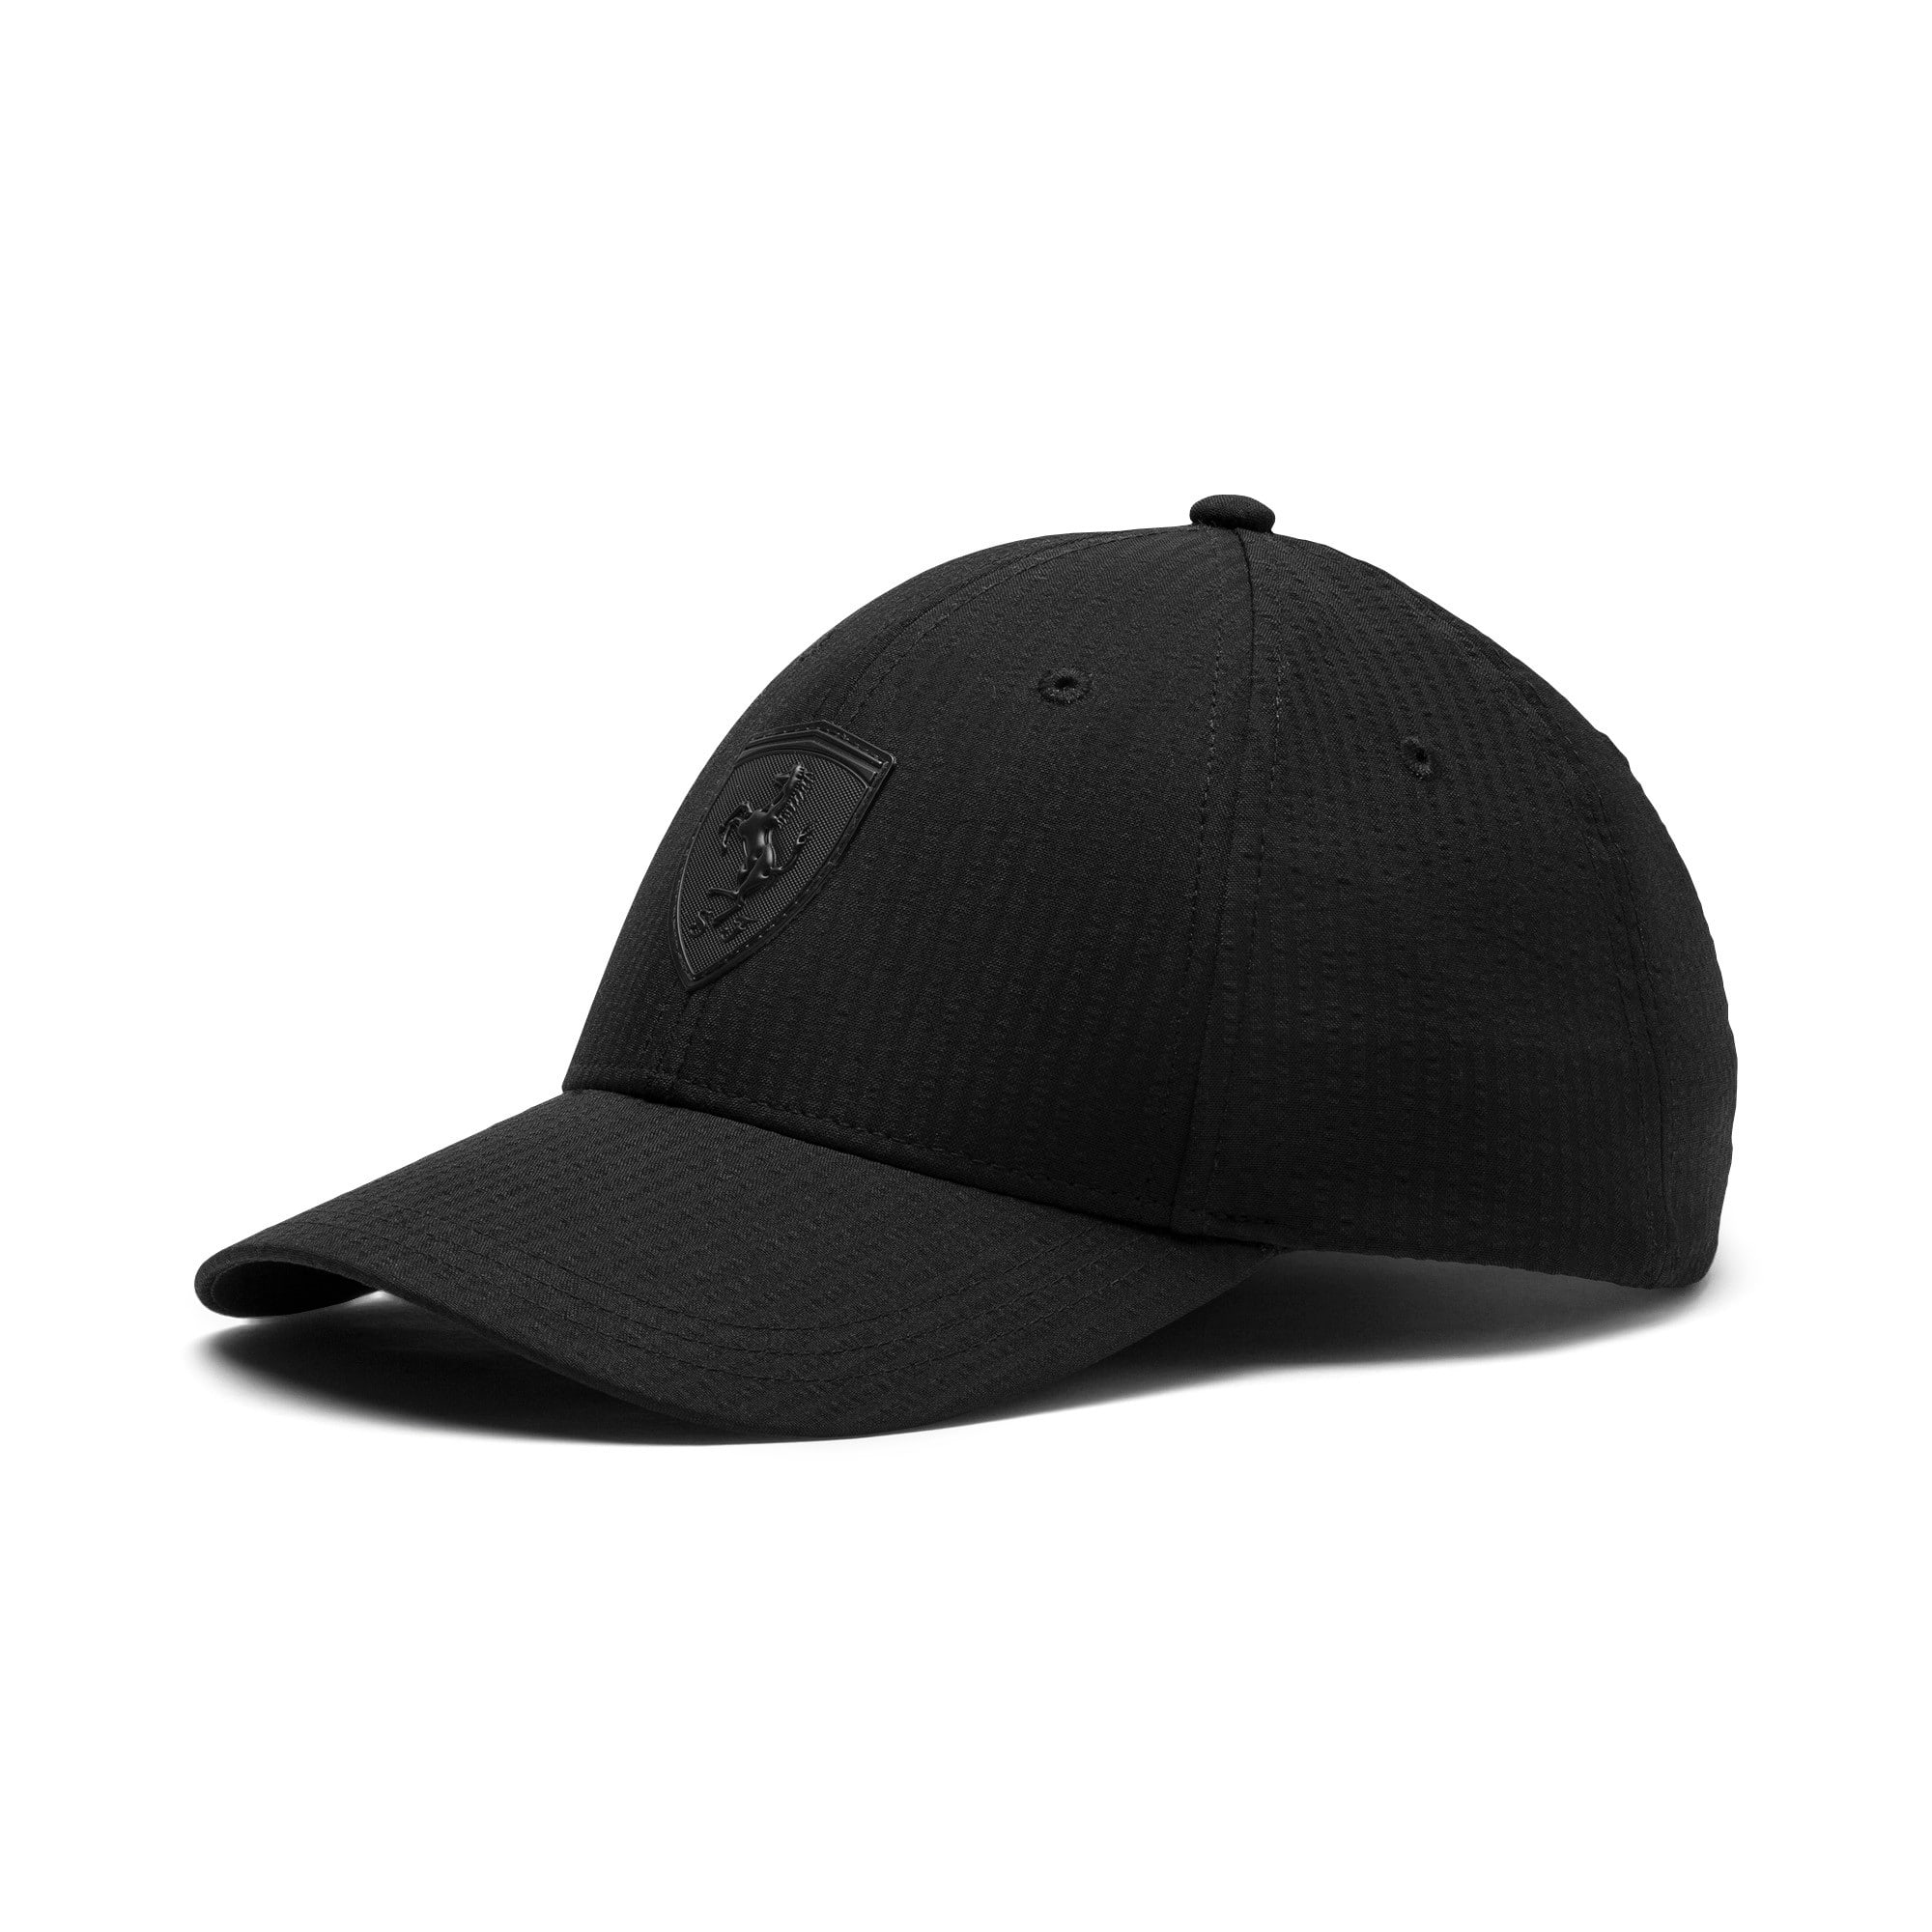 Thumbnail 1 of Scuderia Ferrari Lifestyle Baseball Cap, Puma Black, medium